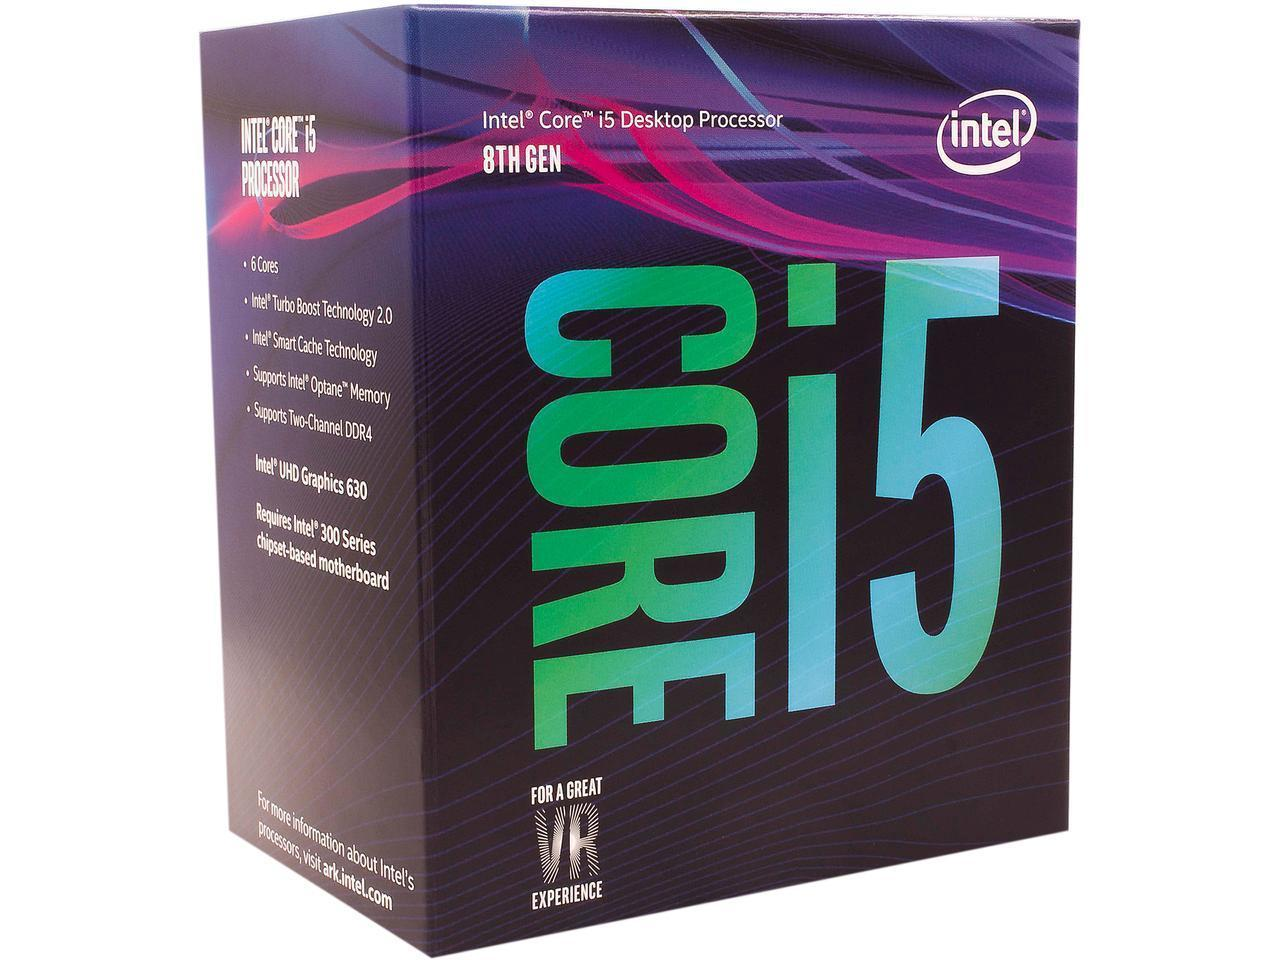 Процесор Intel Coffee Lake Core i5-8600 3.1GHz (up to 4.30GHz ), 9MB, 65W LGA1151 (300 Series)